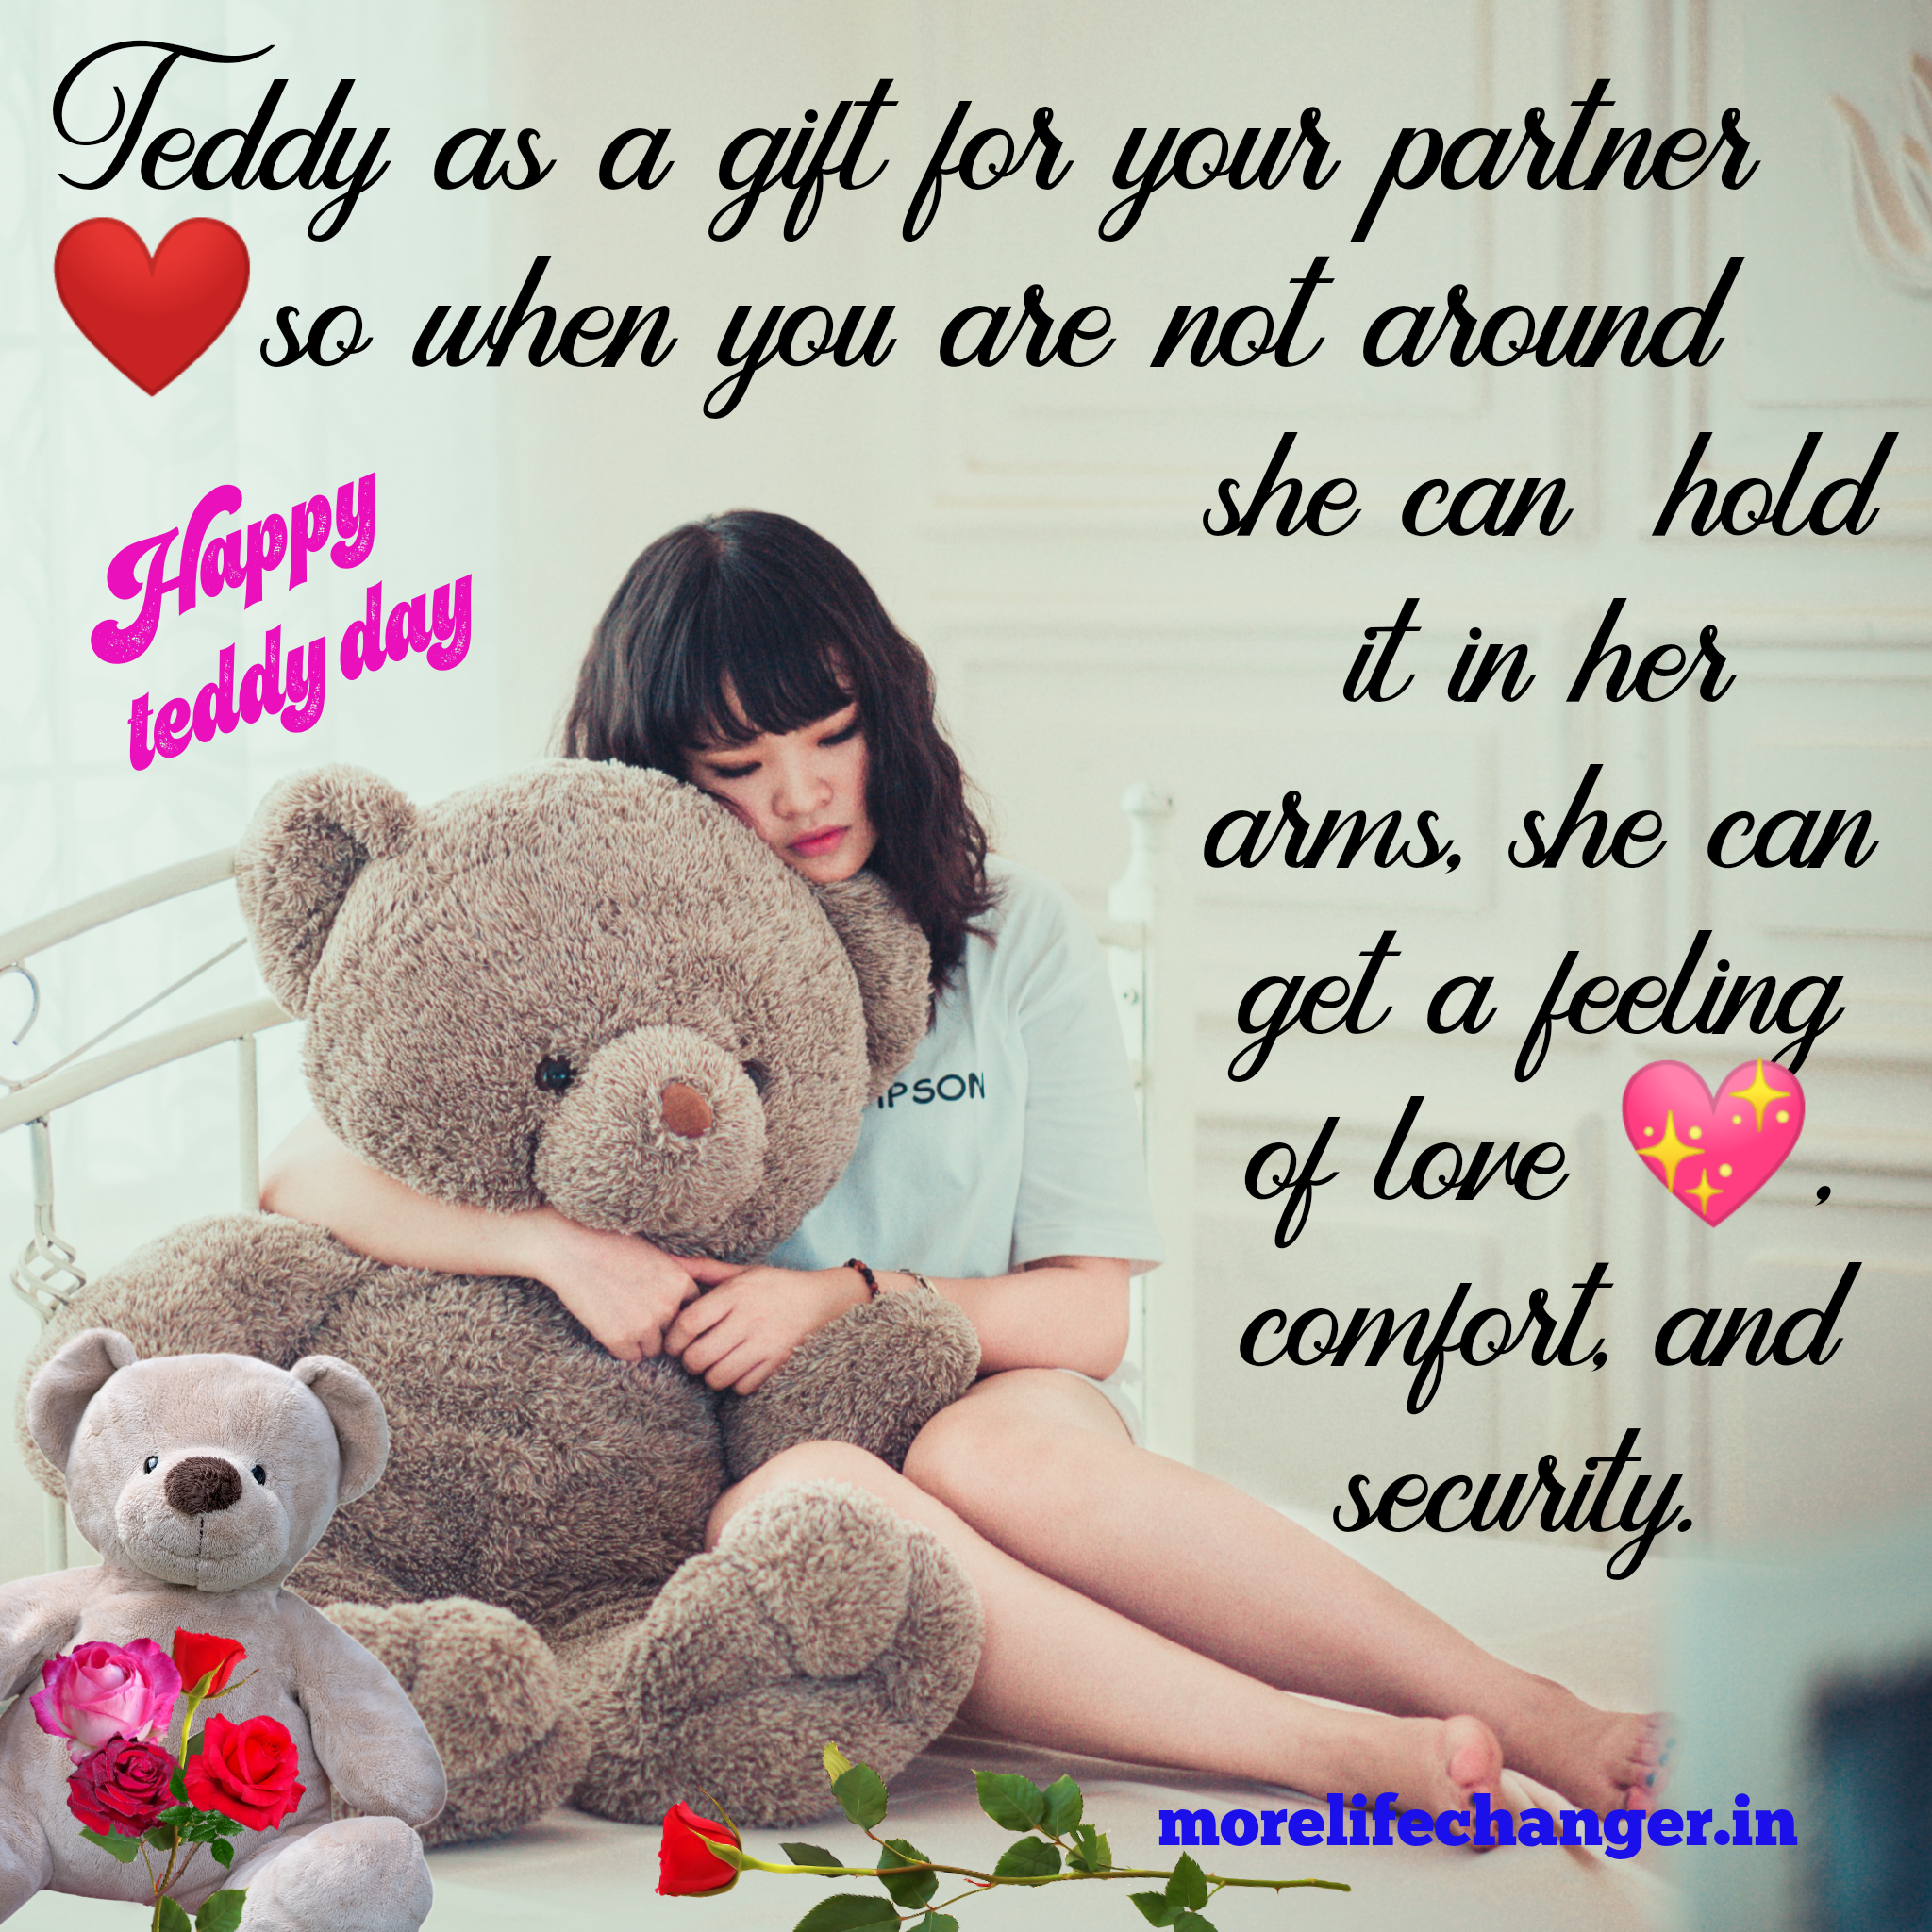 Happy Teddy Day Quotes with HD images